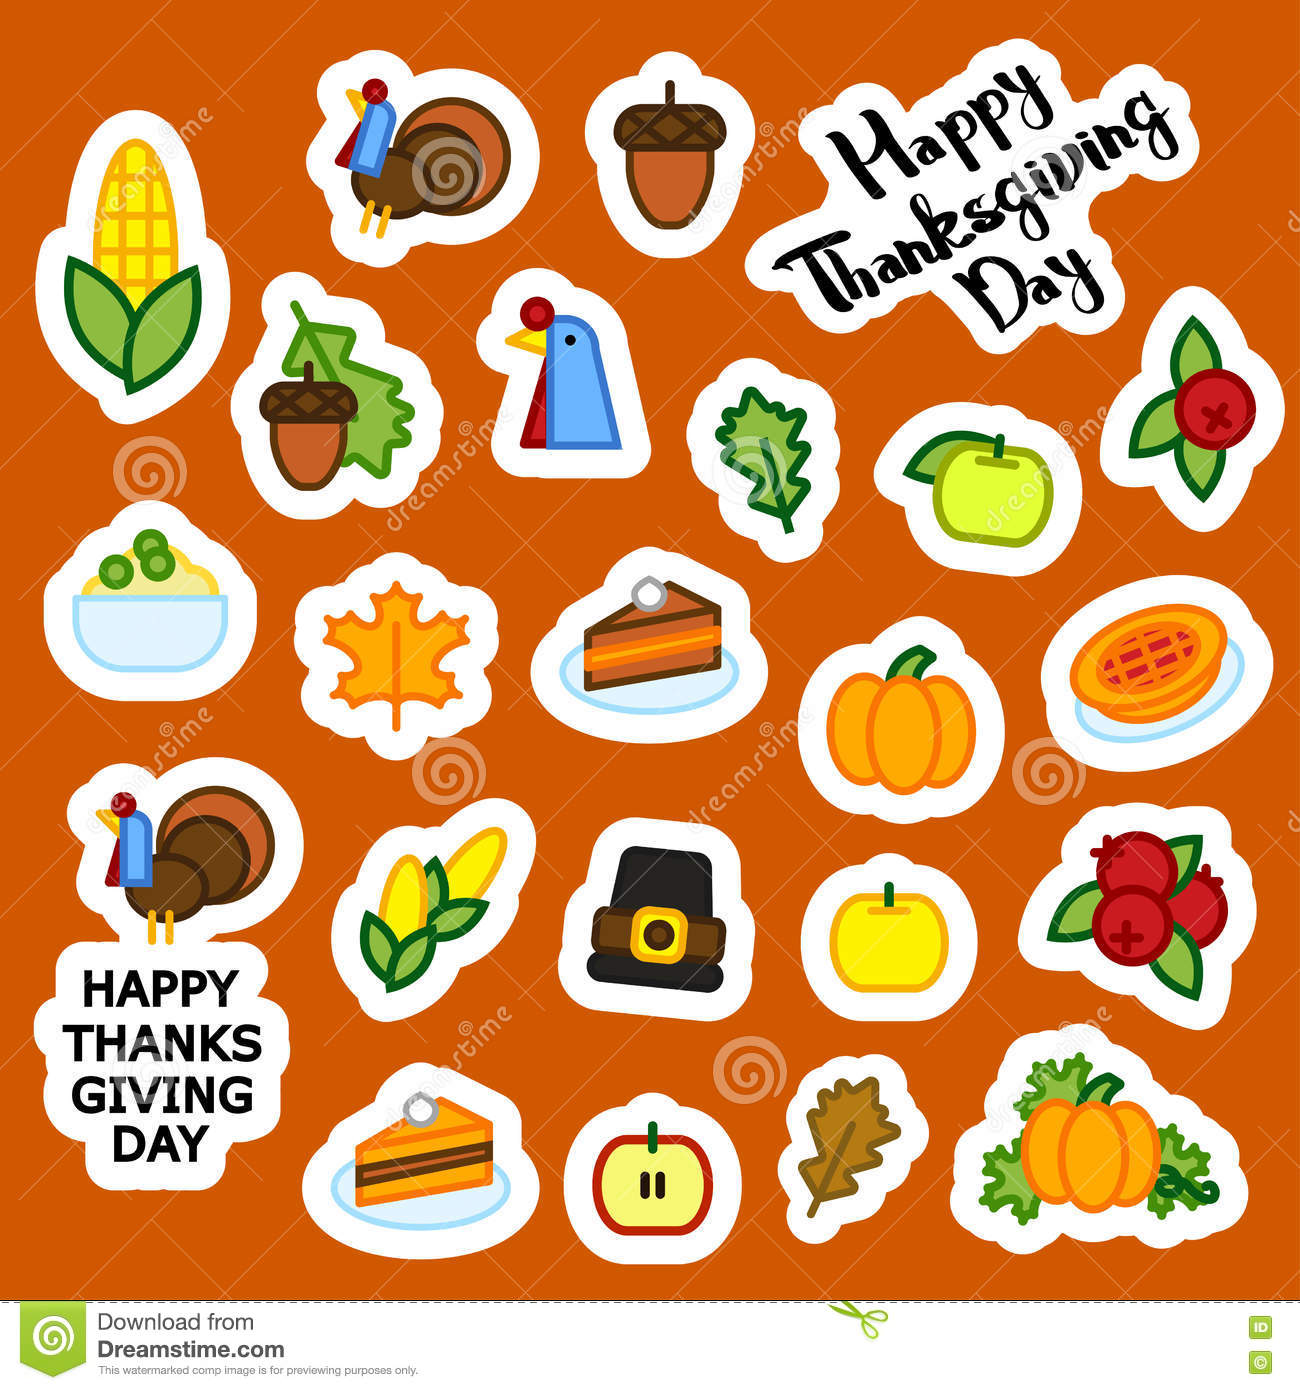 Set Of Abstract Sticker Thanksgiving Day Icon Holiday Symbols